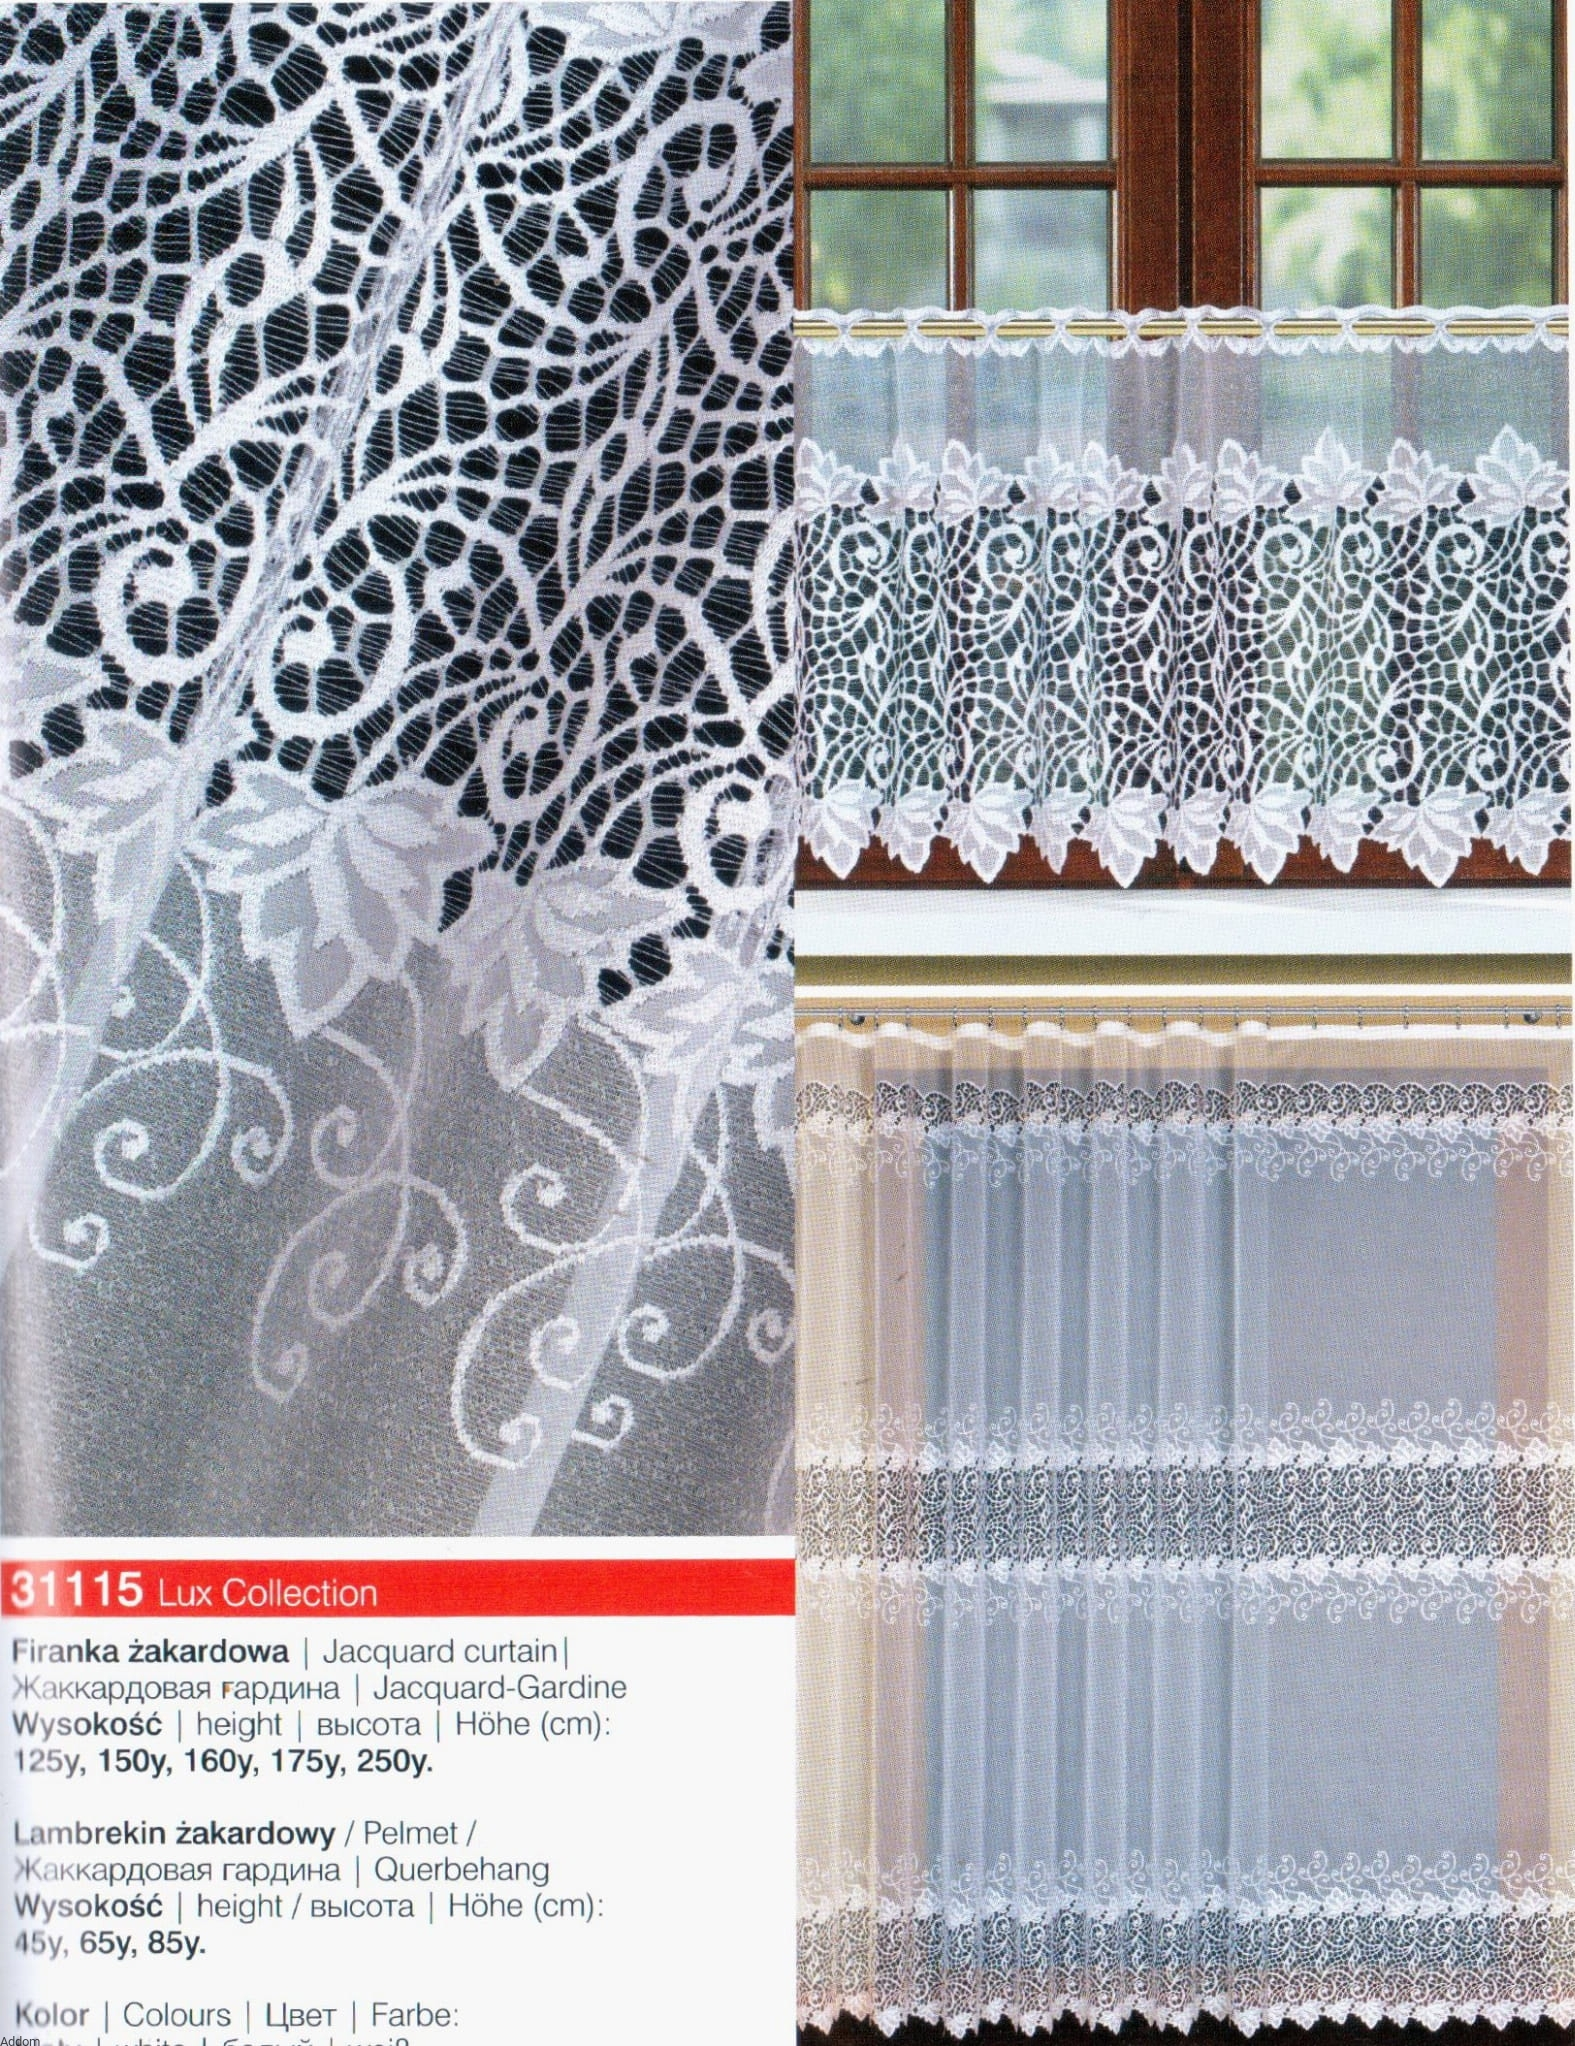 Firany Z Kalisza Lux Collection 31115